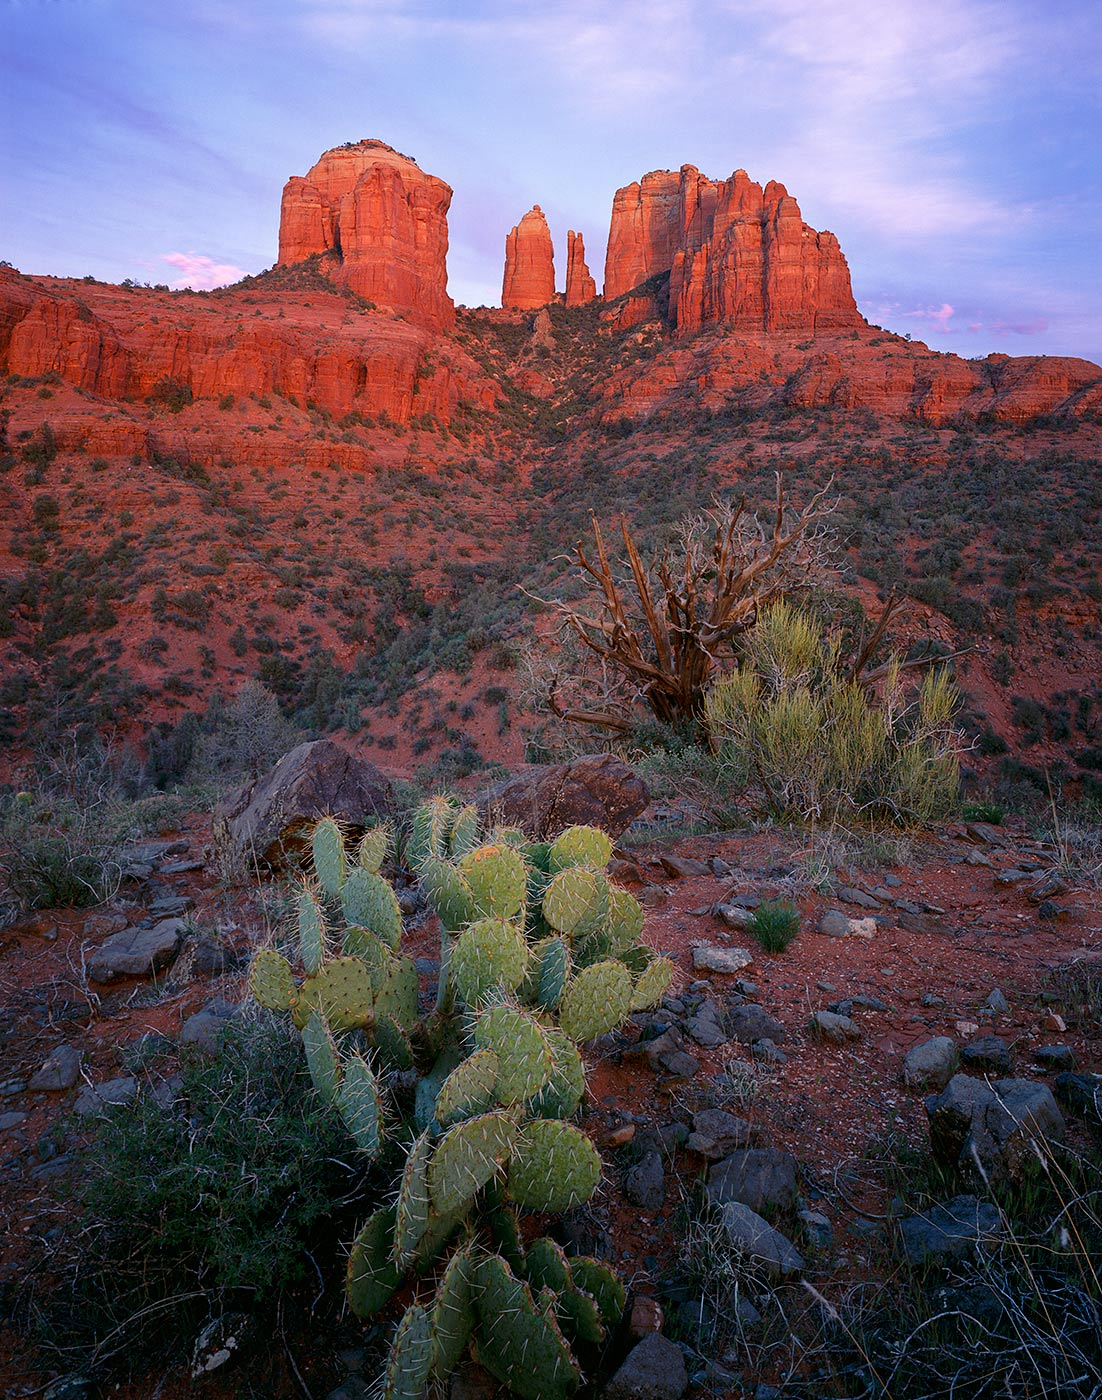 425 Cathedral Rock & Prickly Pear, Coconino National Forest, Arizona